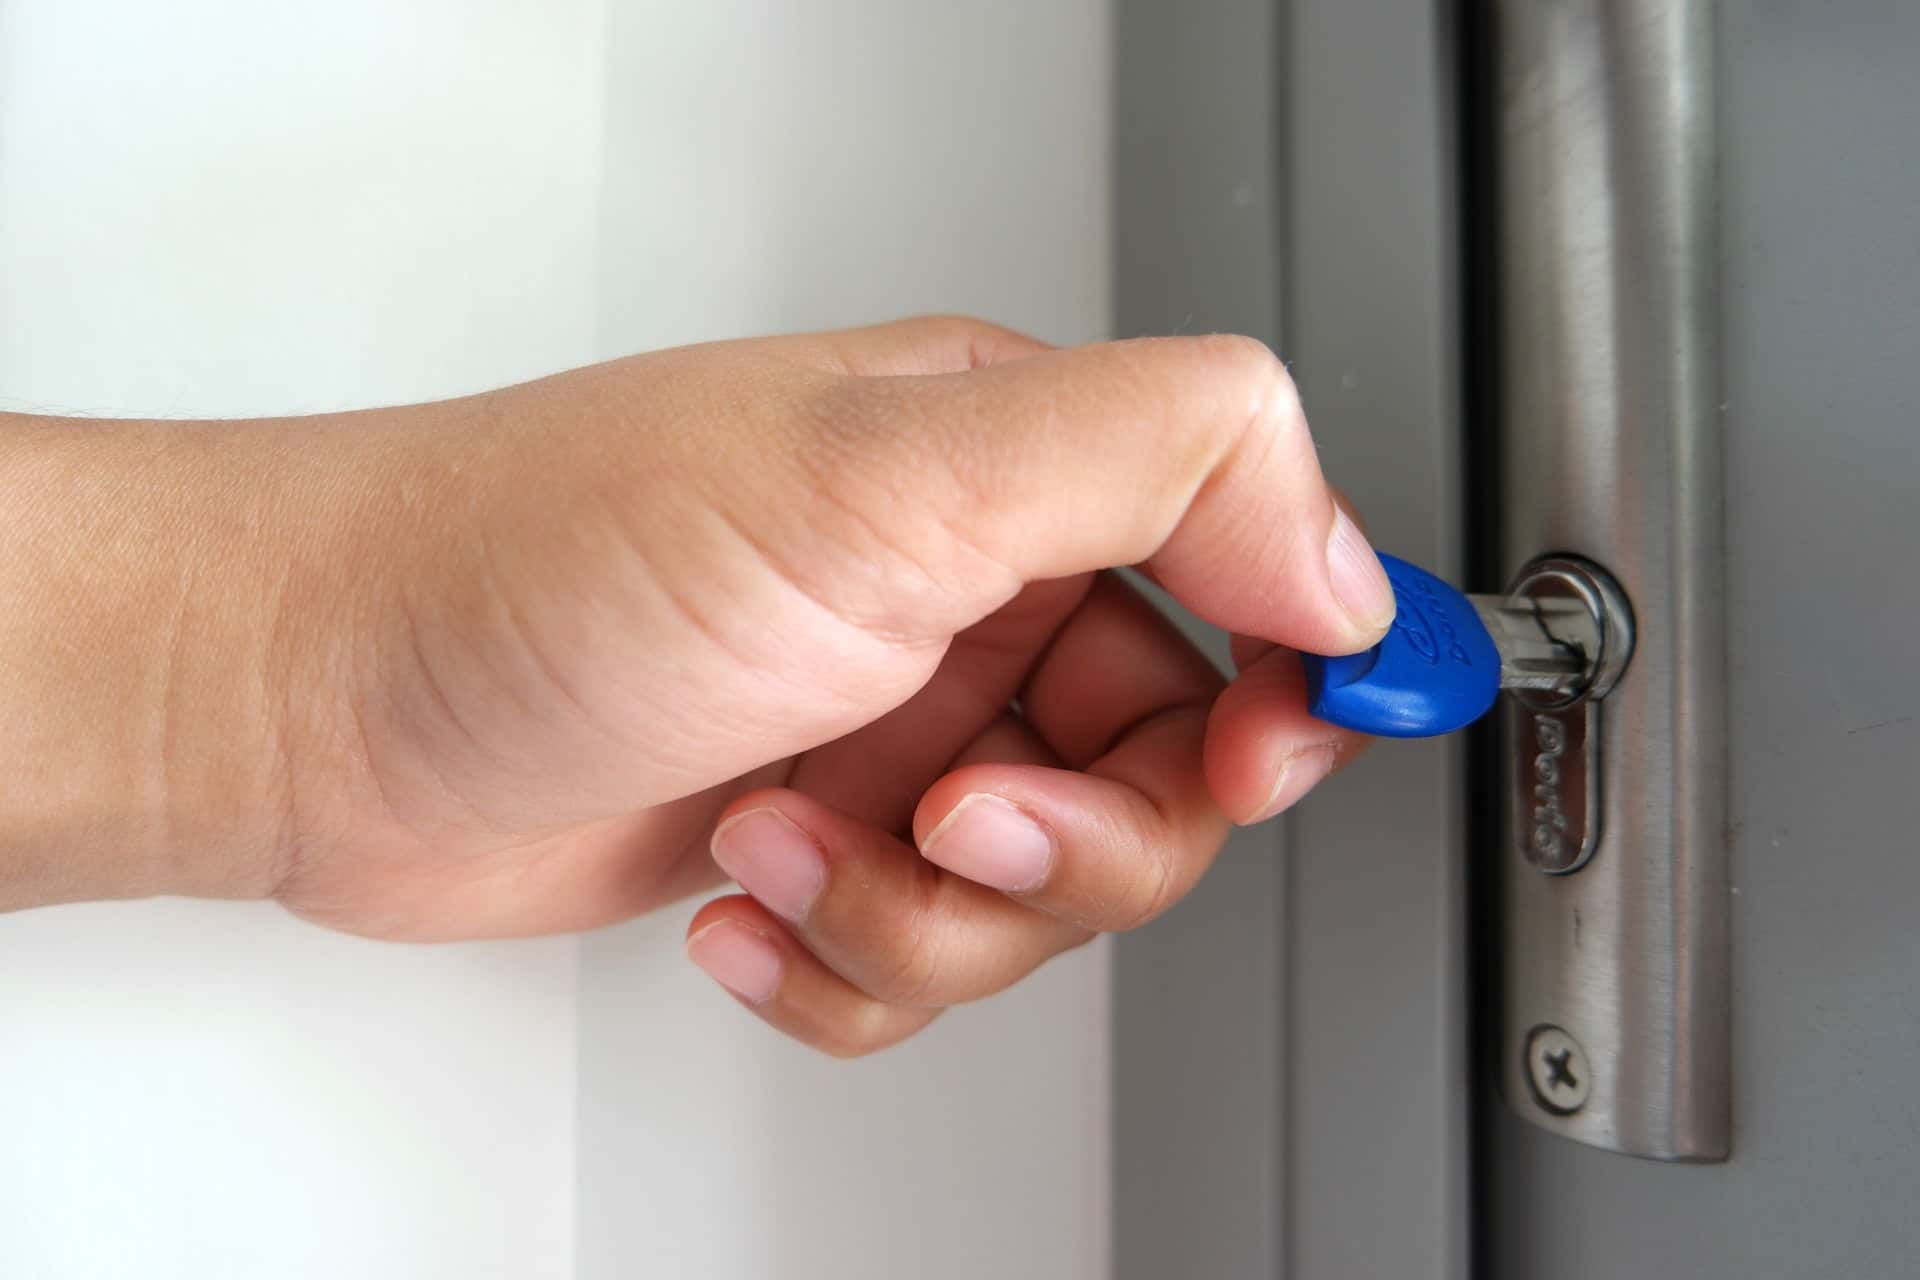 An image of a persona putting a key into a lock to enter a home.